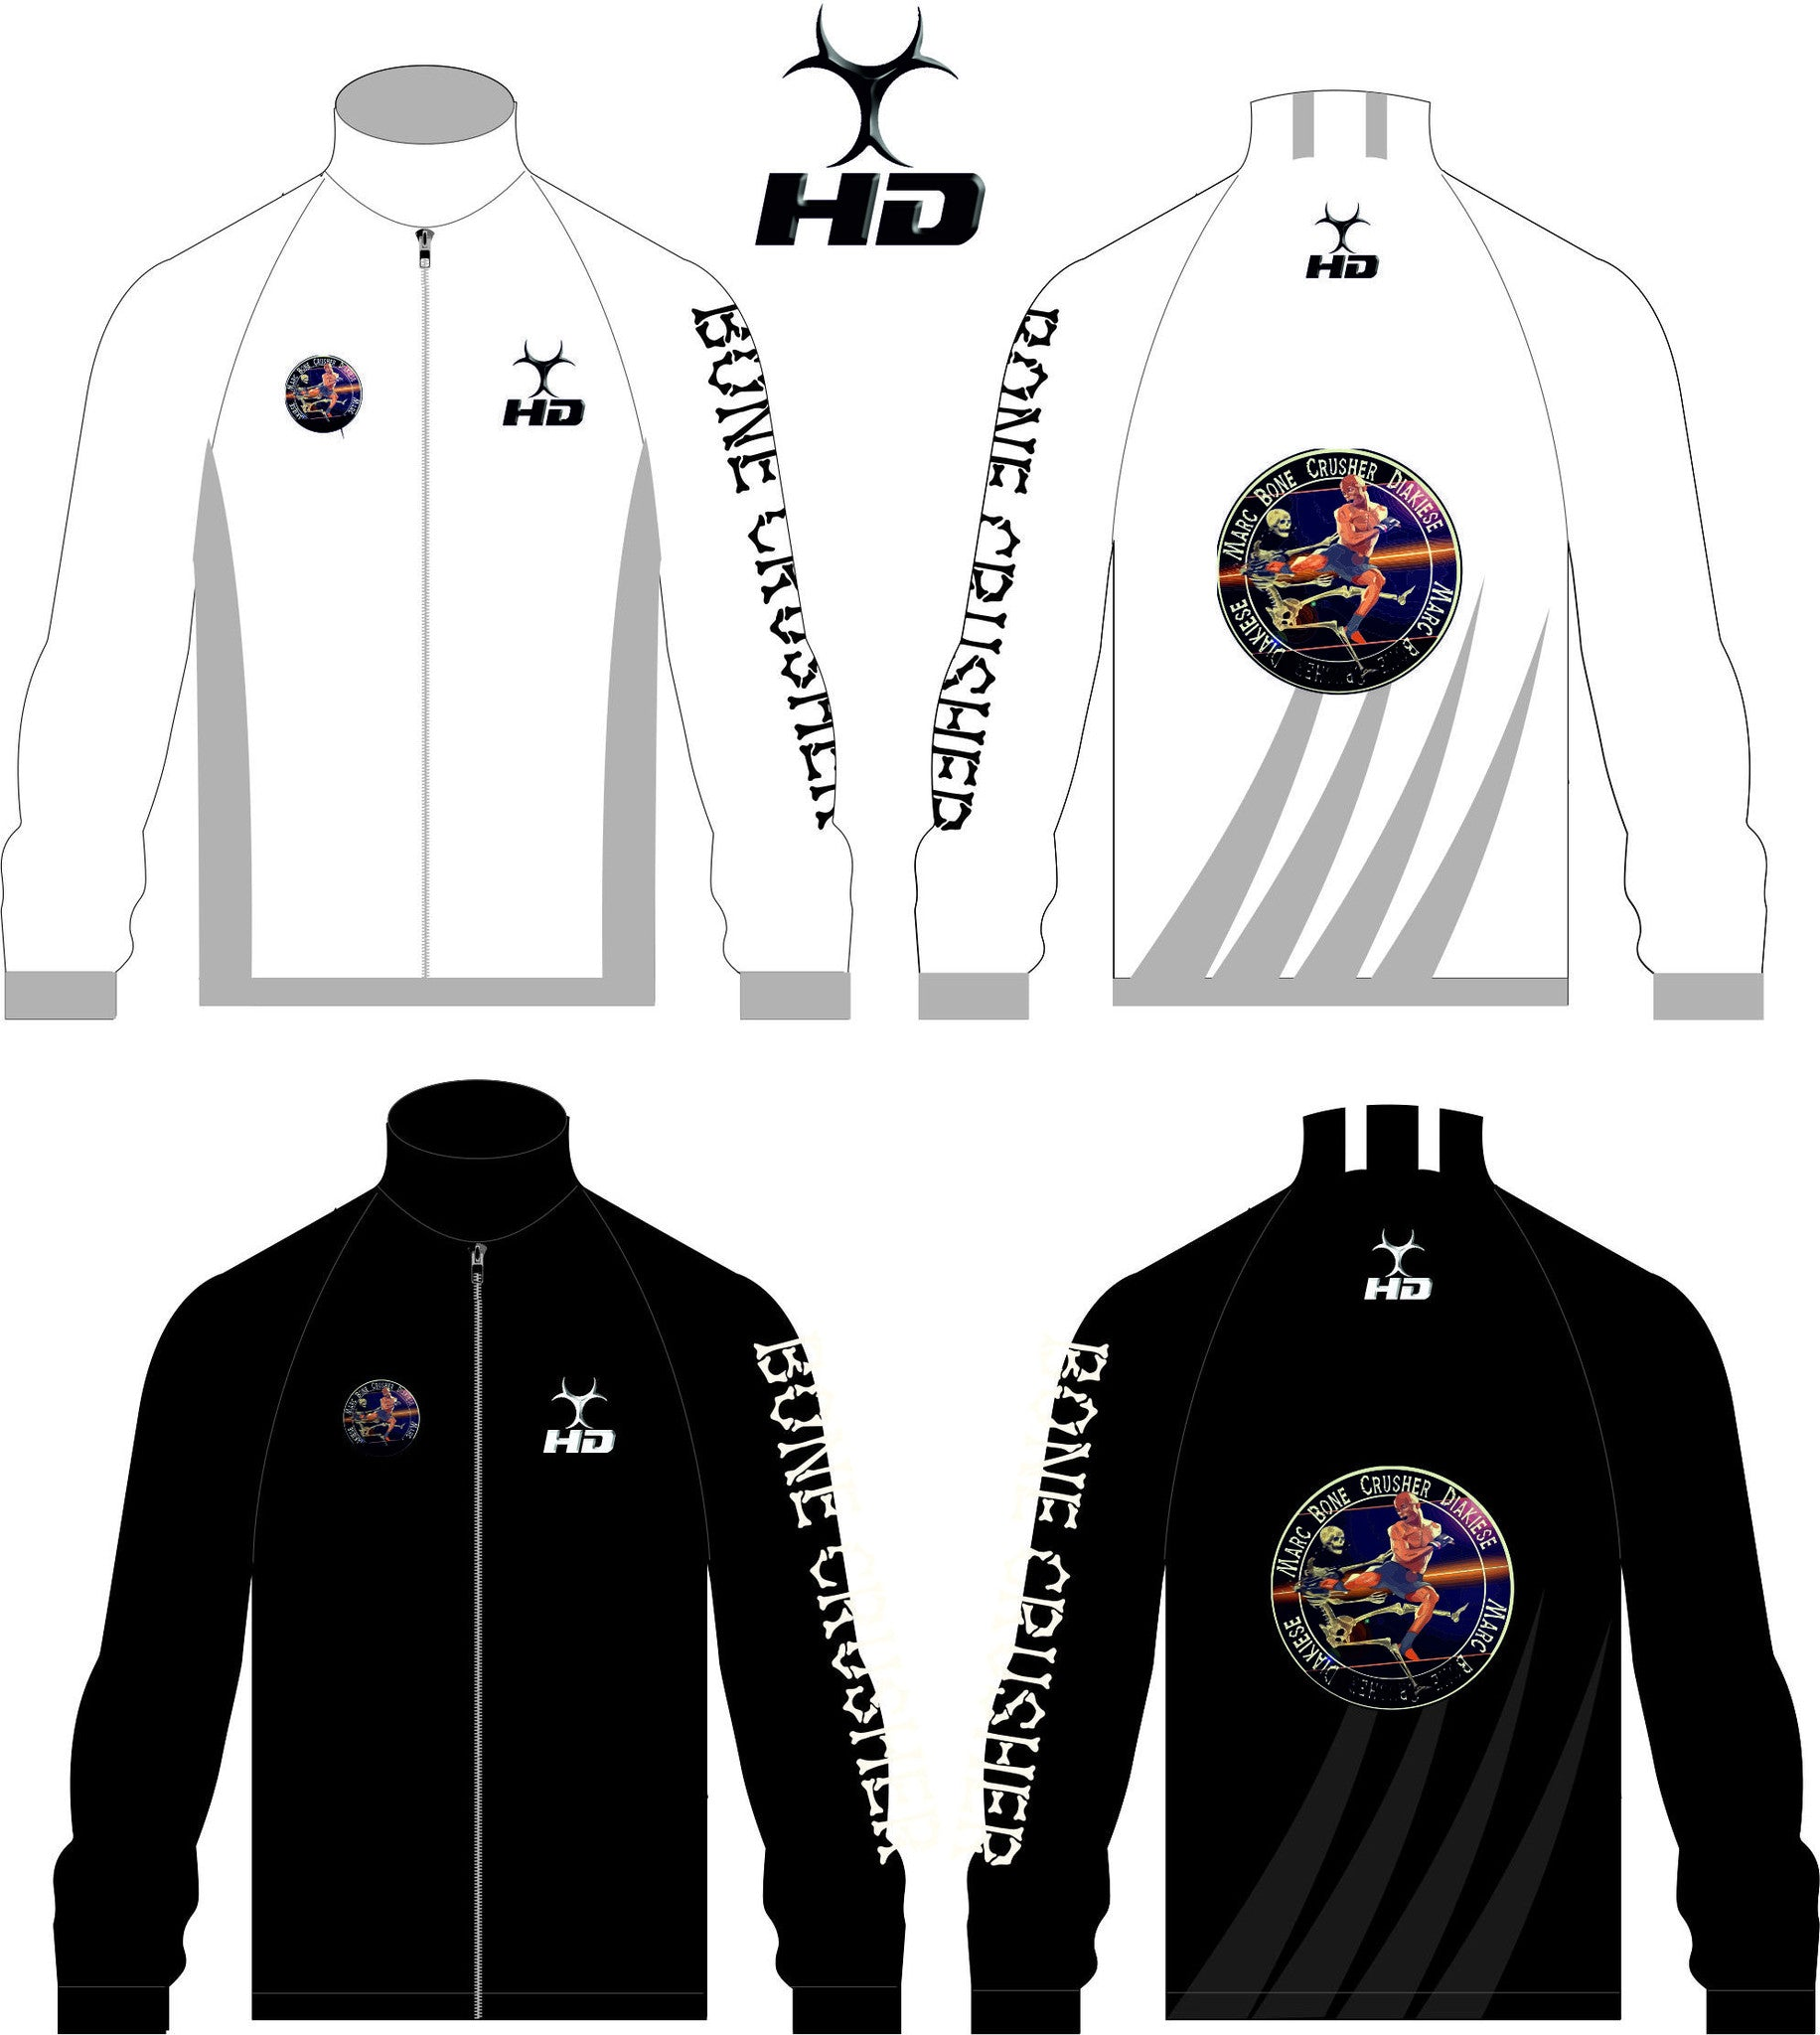 HD Sport Launch Official Marc 'Bonecrusher' Diakiese Limited Edition Tracksuit Top Only £49.99